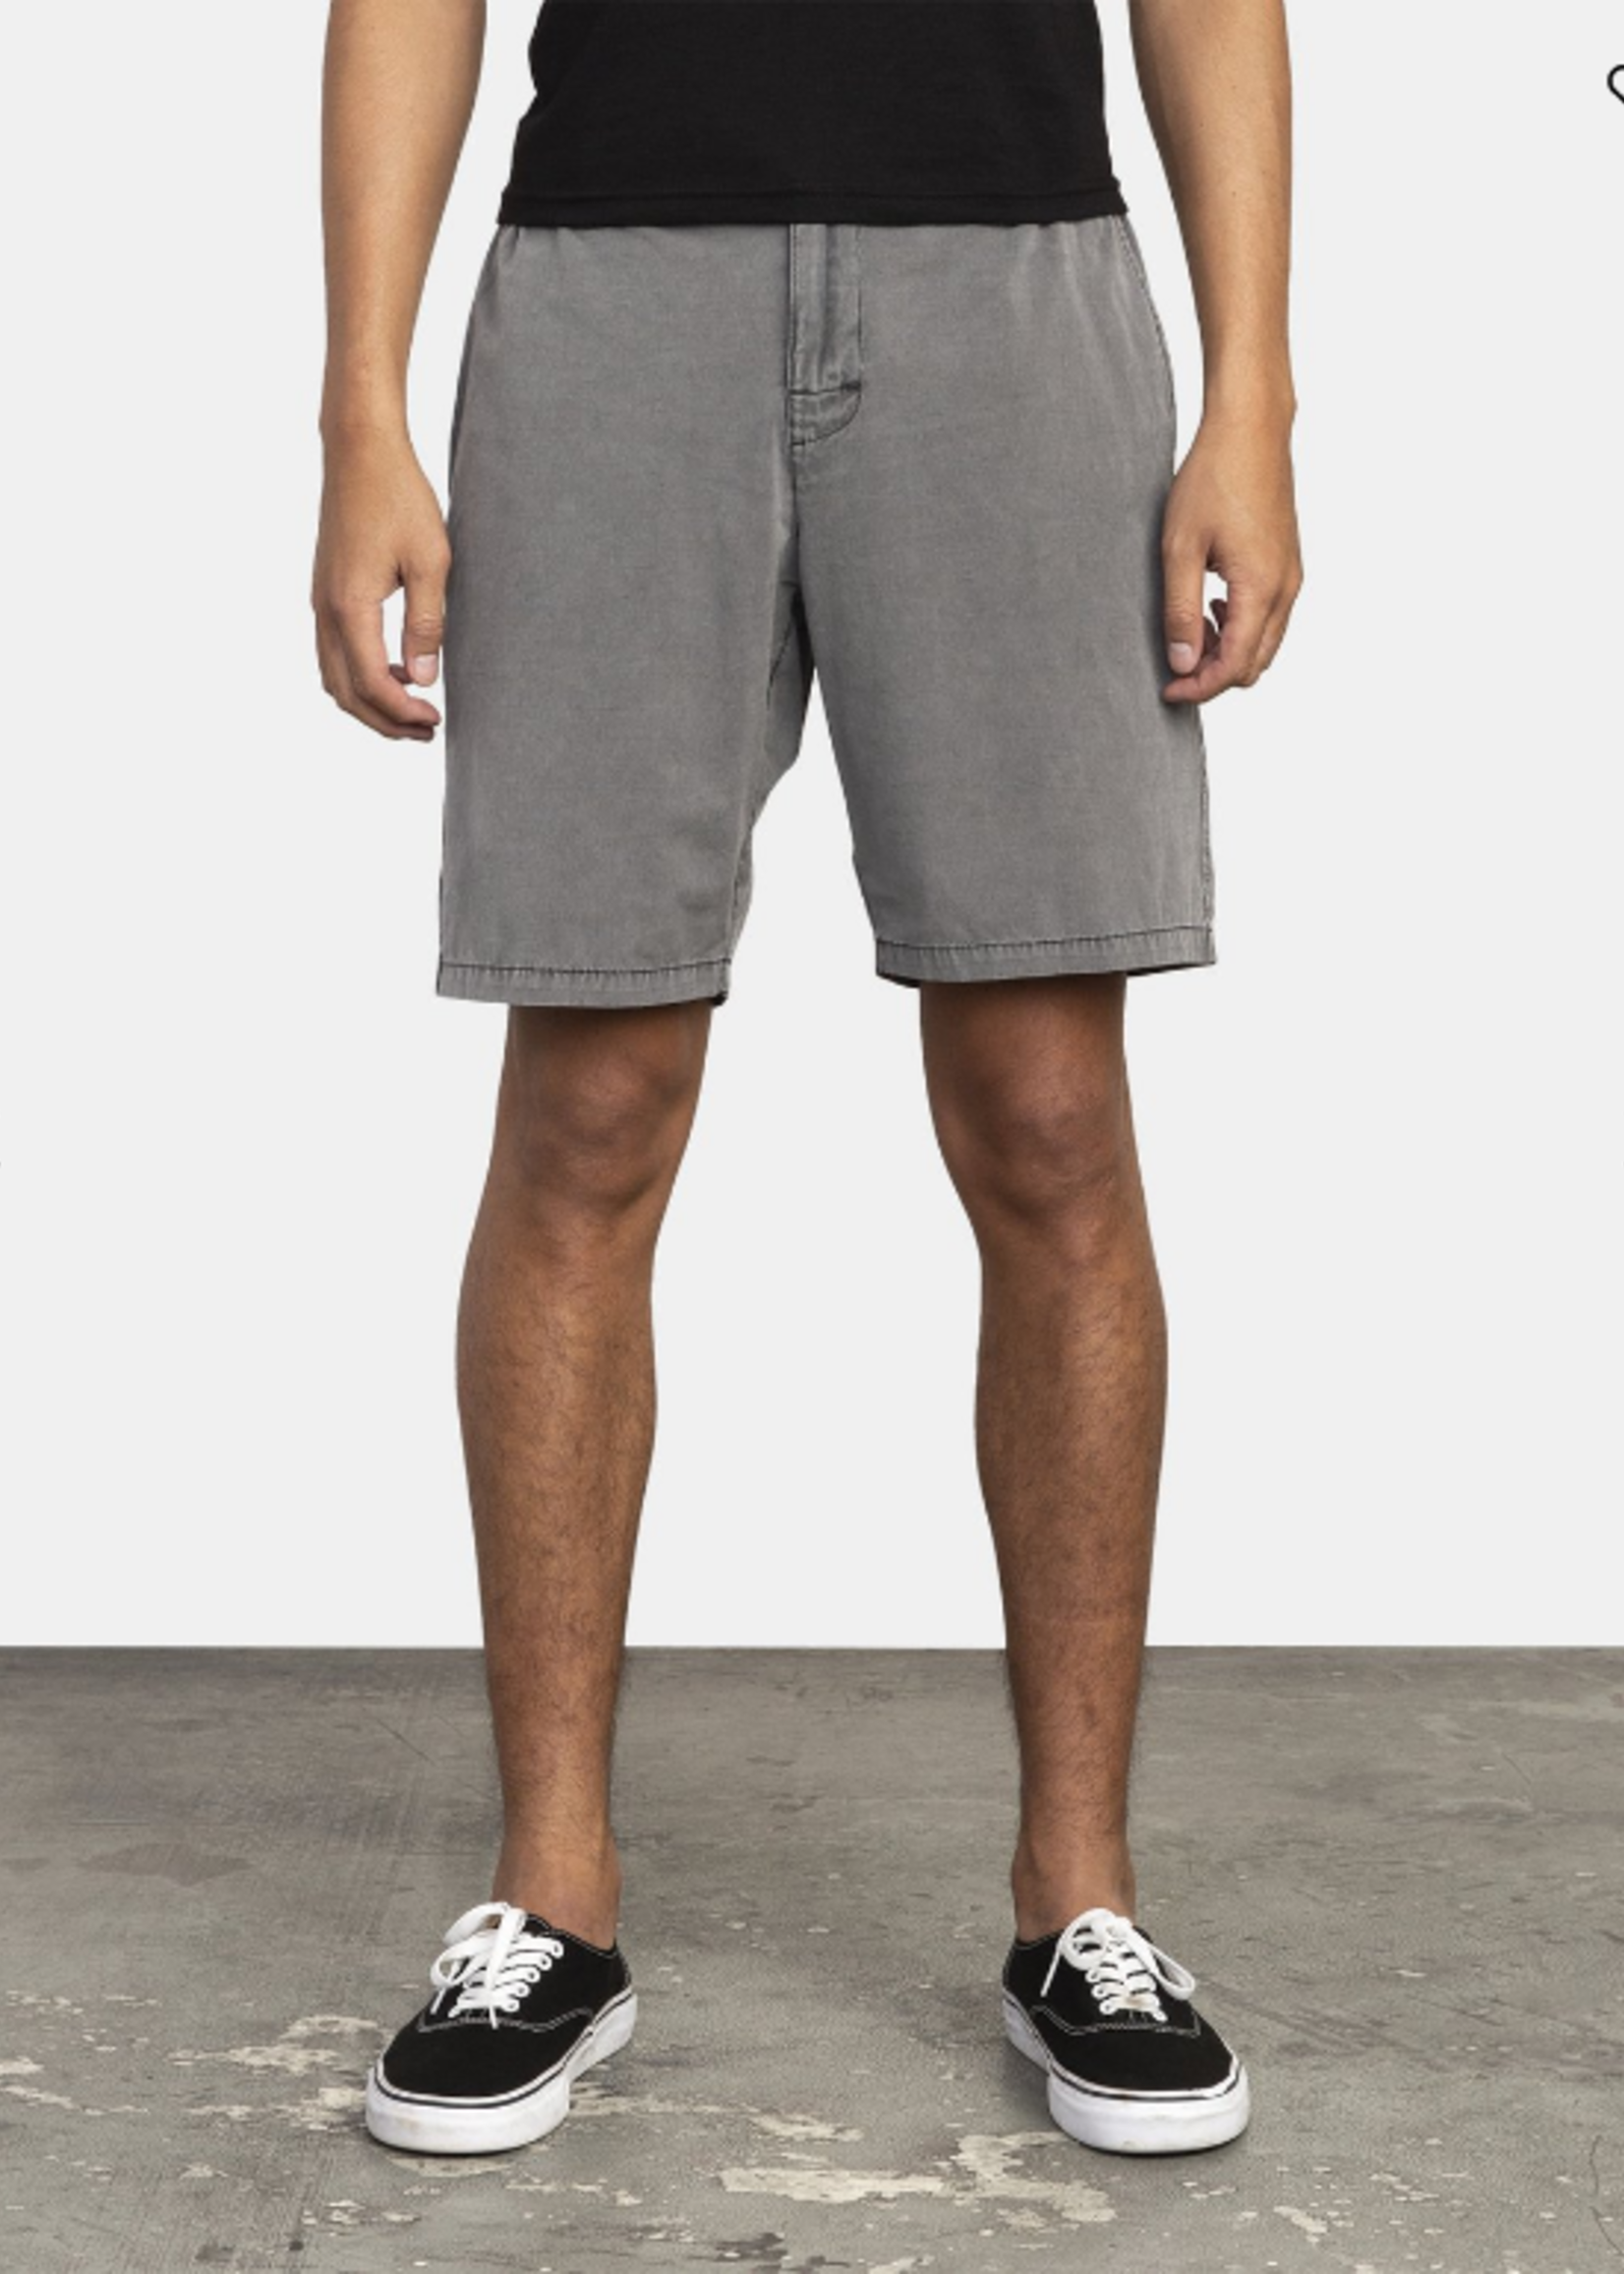 RVCA All time Rinsed Shorts - Pirate Black